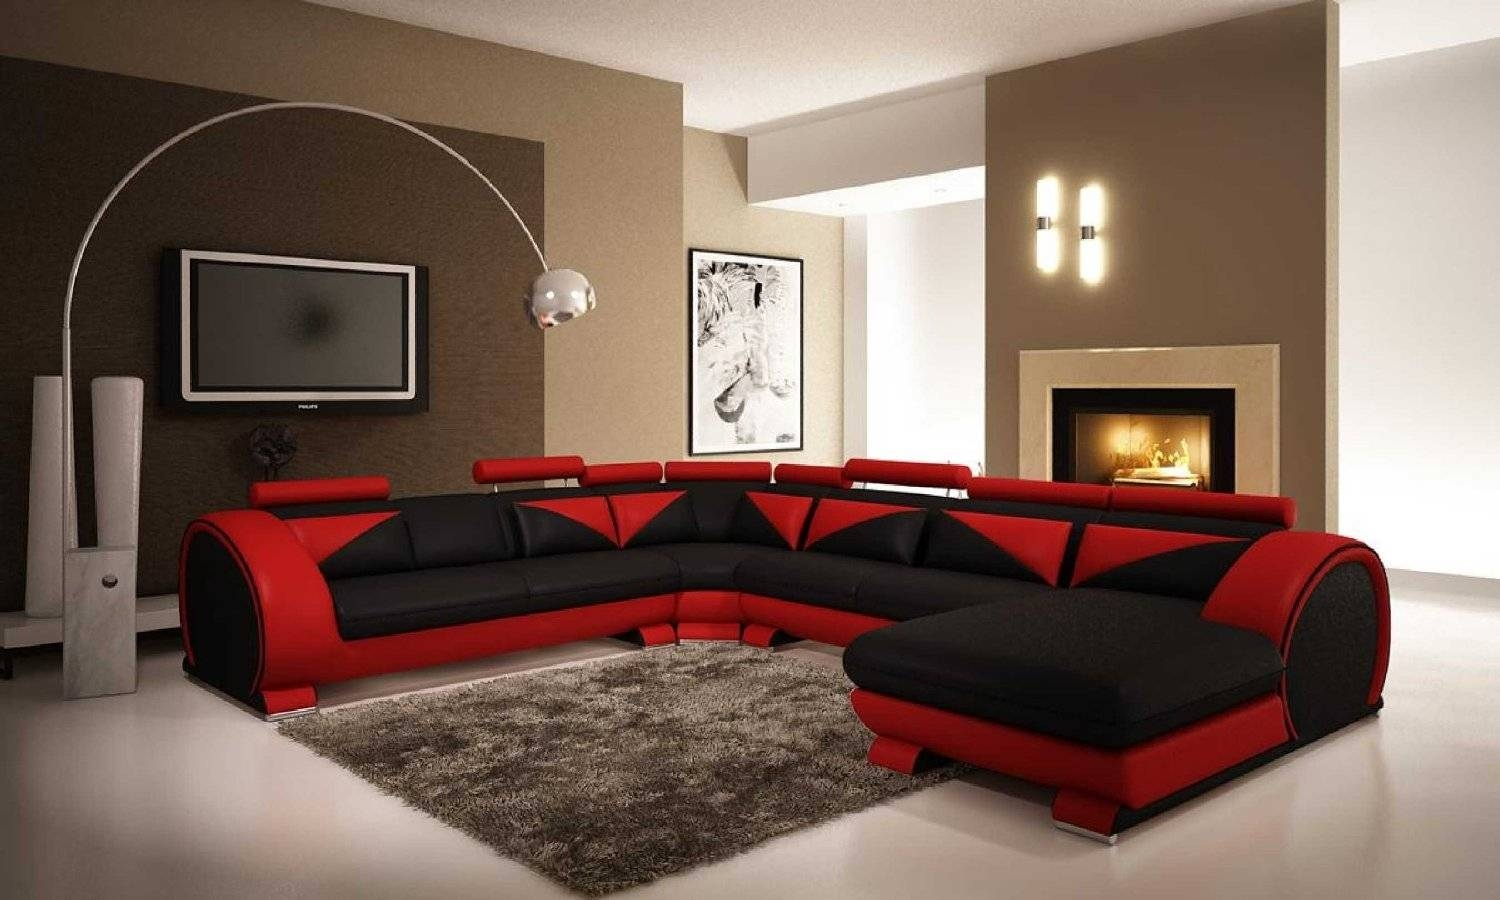 Firestone Red Black 2 Tone Bonded Leather Furniture Sofa Living with Sofa Red and Black (Image 11 of 25)